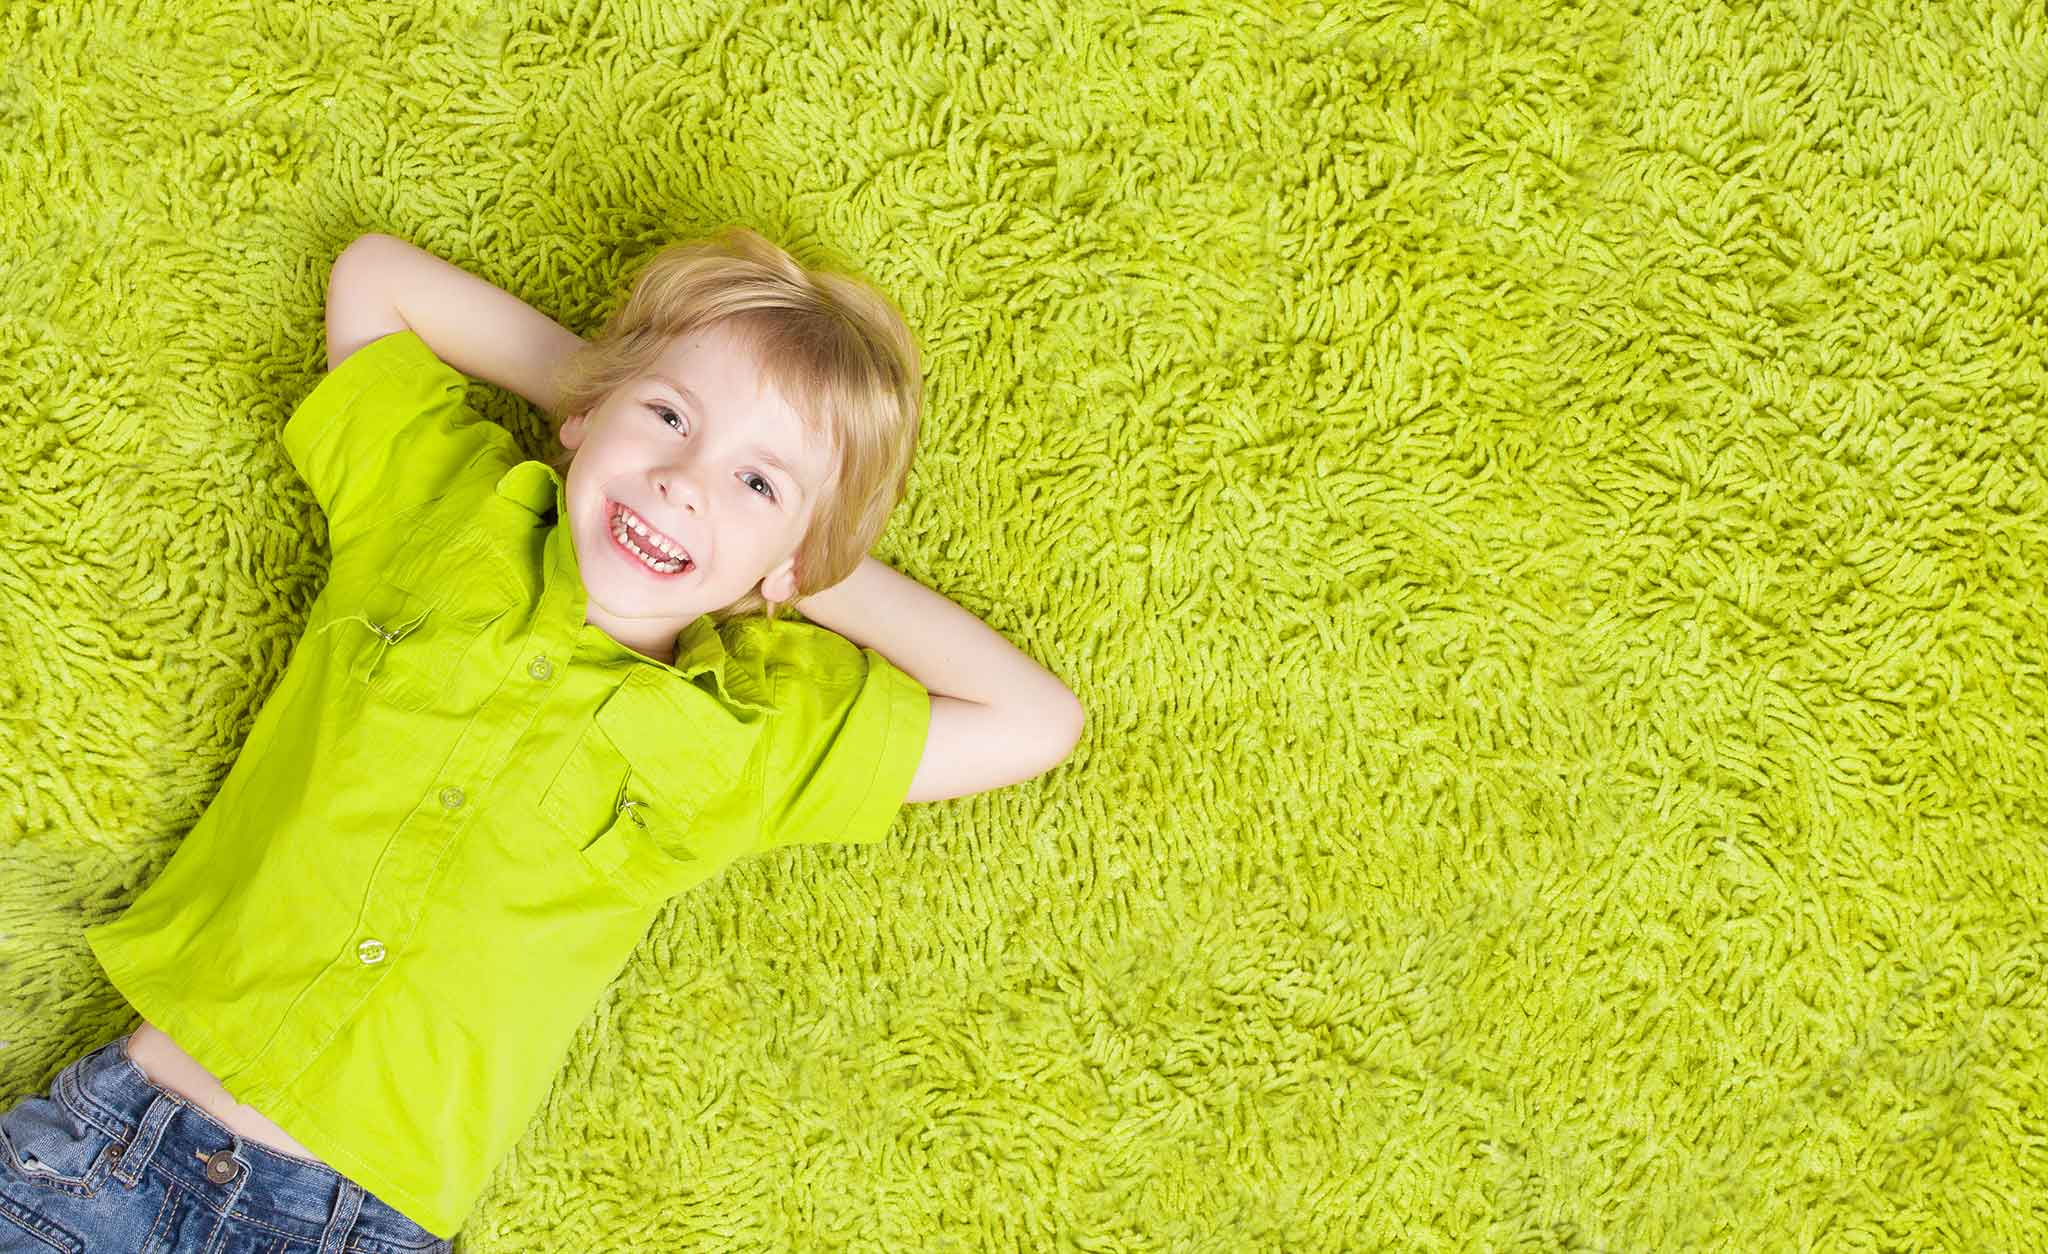 Happy baby smiling and laying on a rug